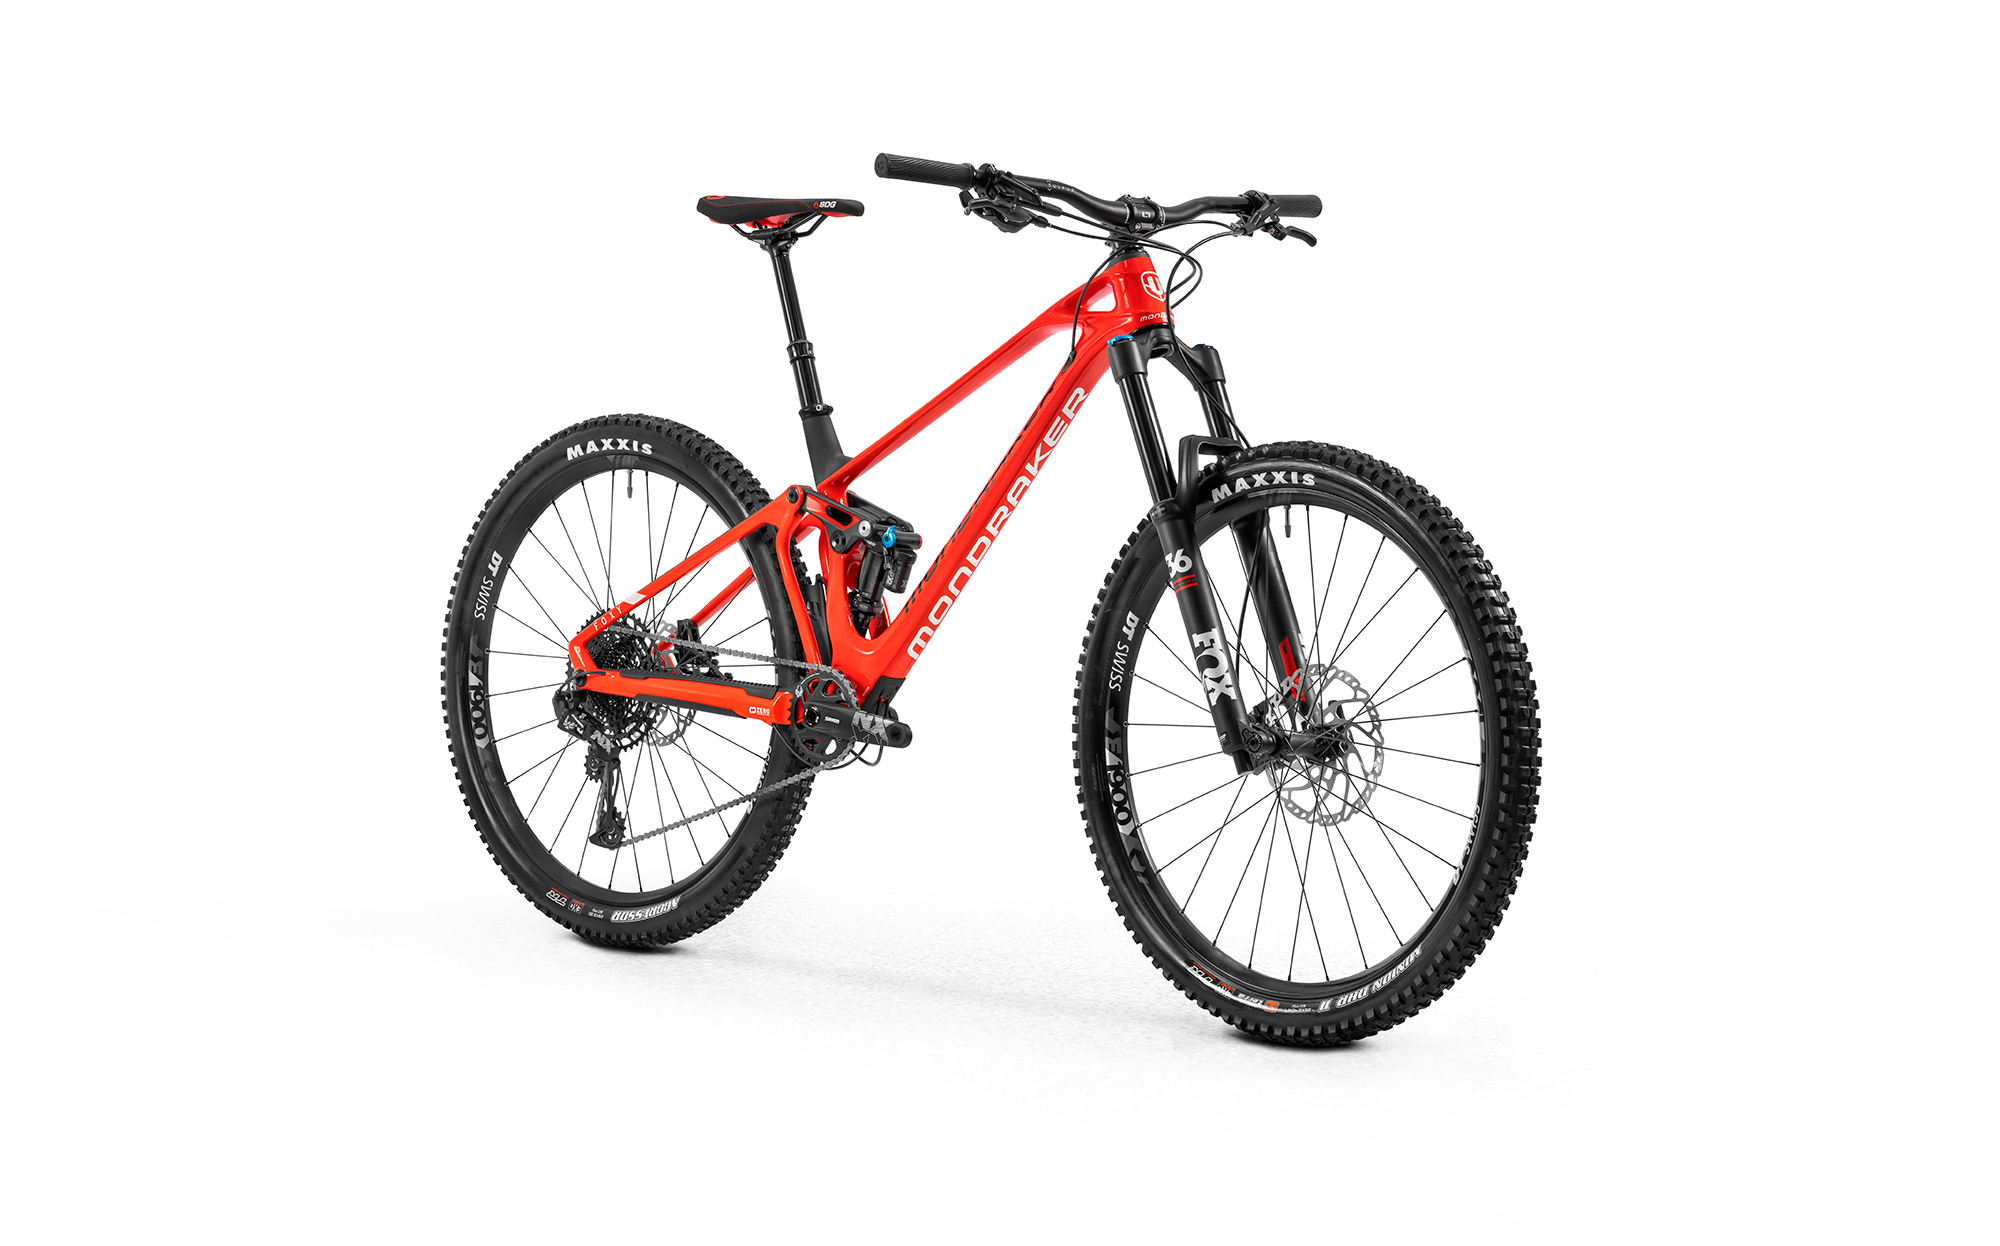 Foxy Carbon R 29, flame red/carbon, 2020